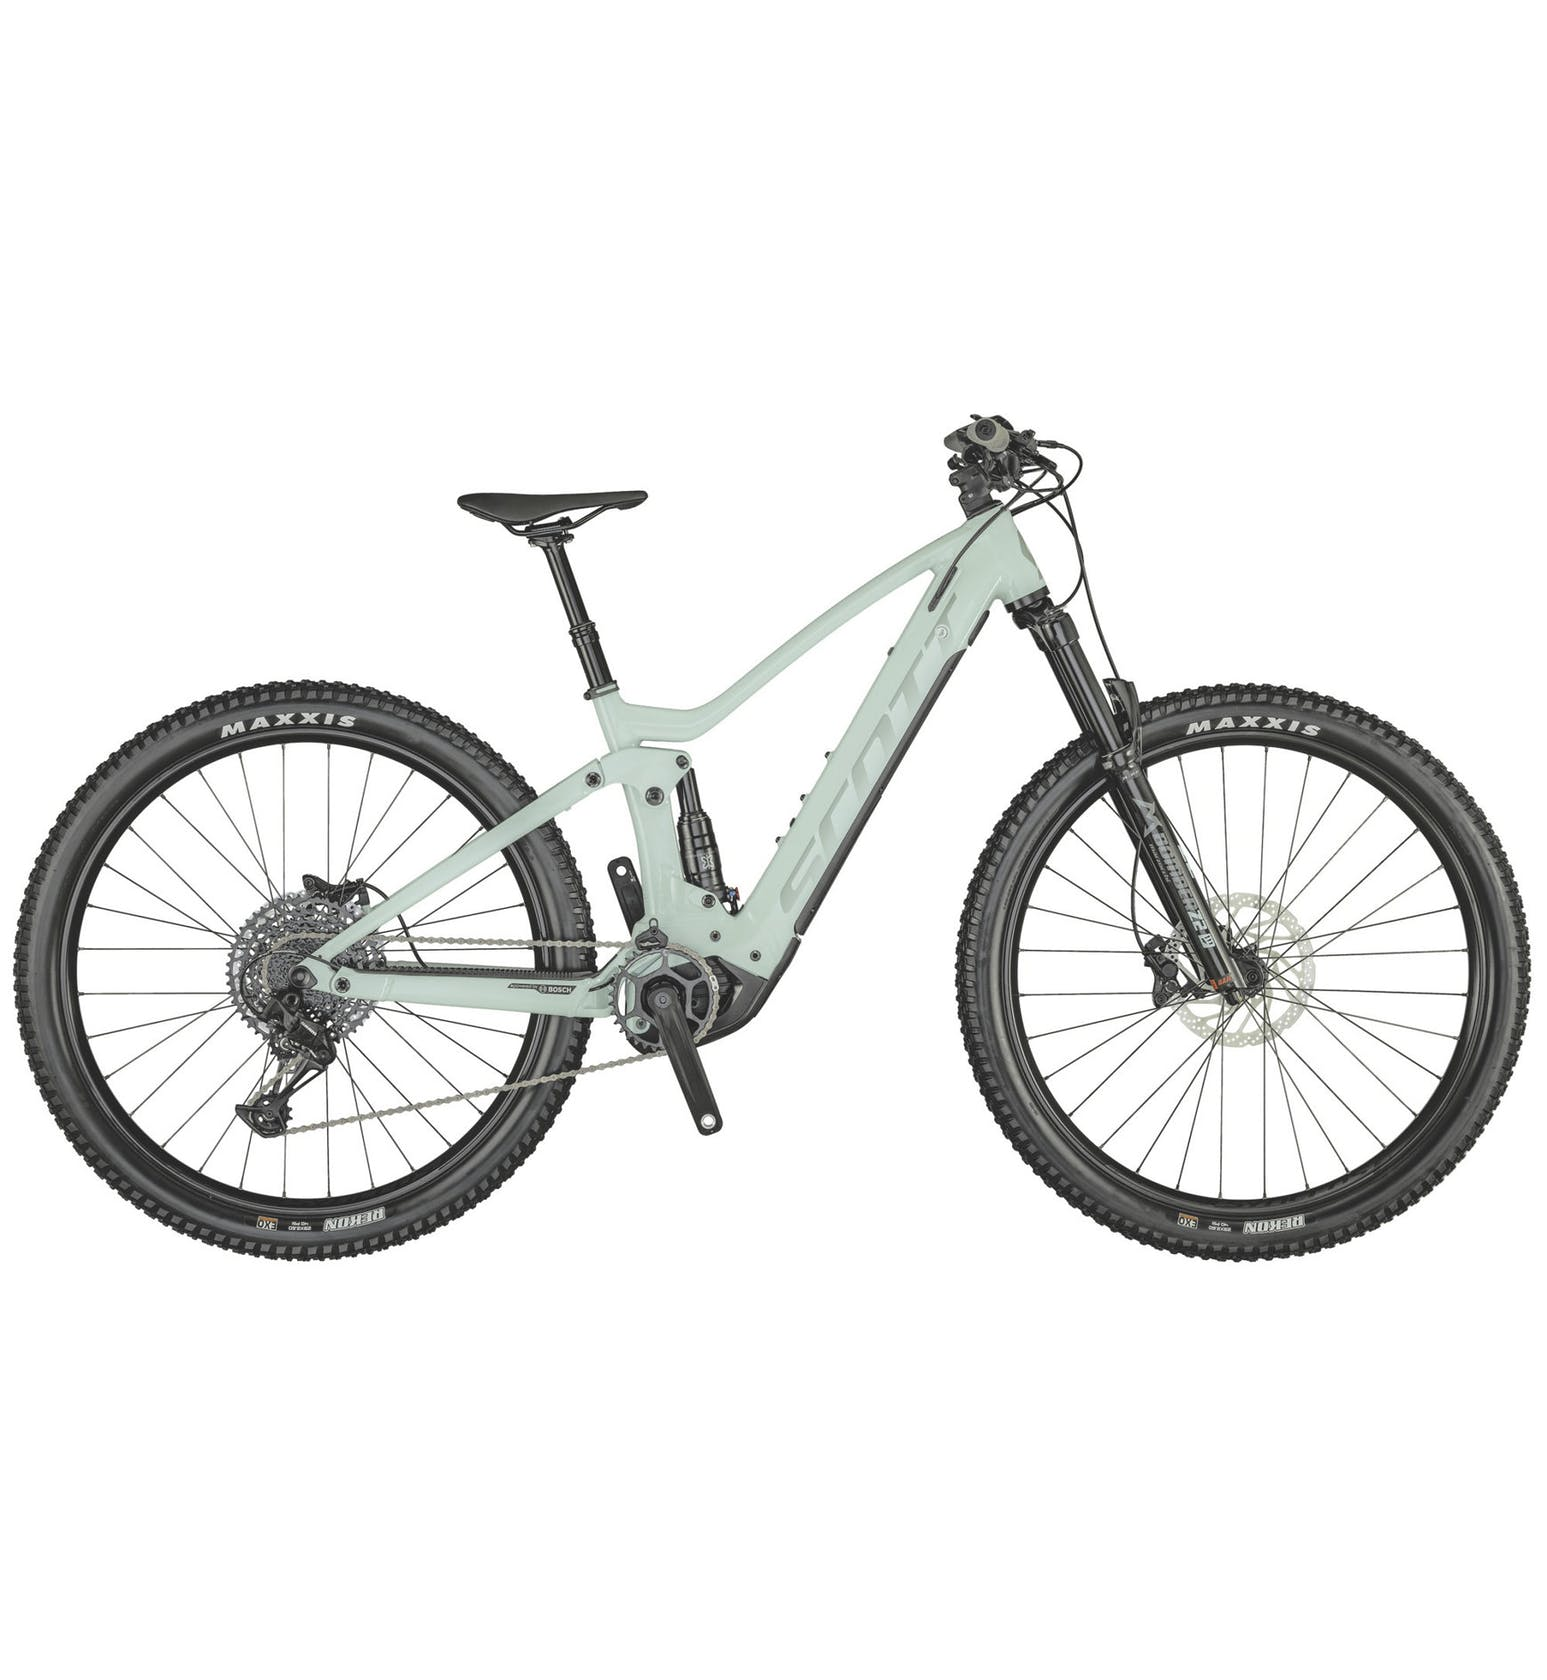 SCOTT Contessa Strike eRide 920 (2021) - MTB elettrica trail - Donna